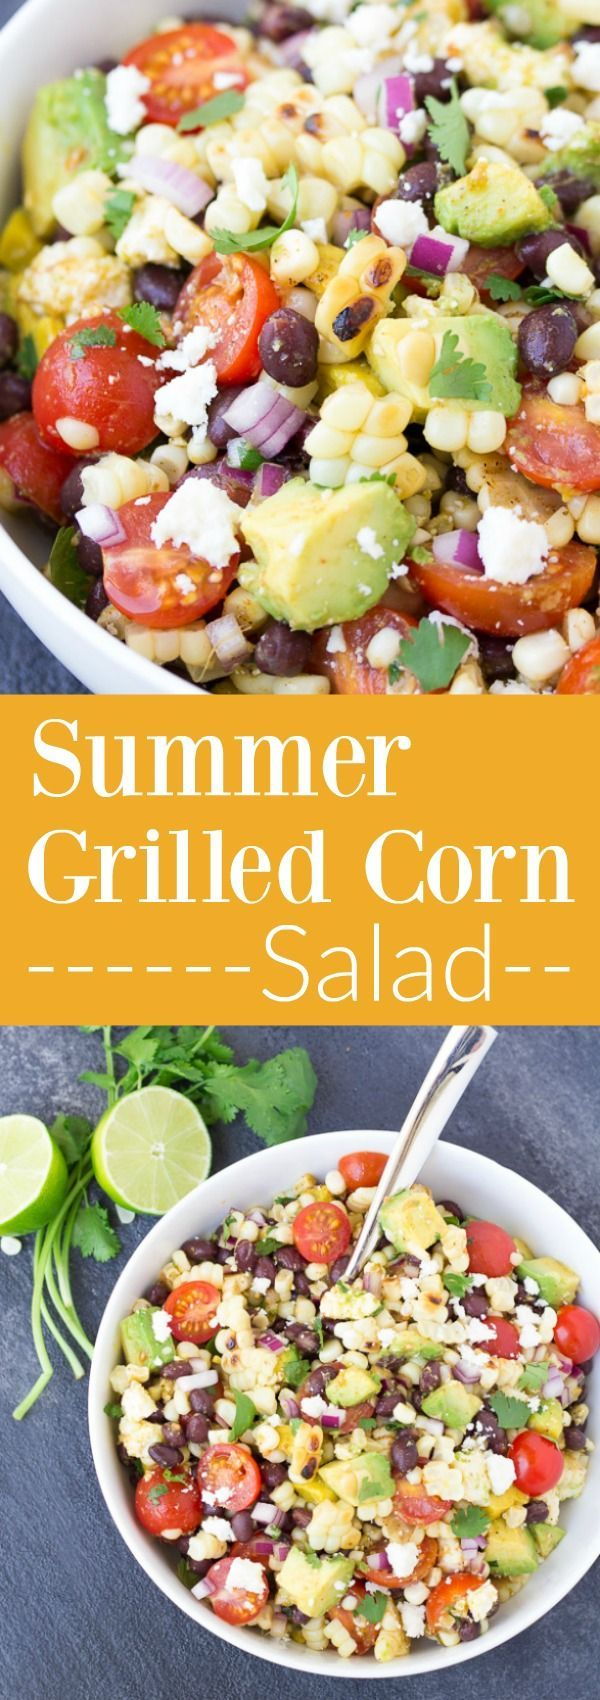 This Summer Grilled Corn Salad is full of avocado, black beans, and Cotija cheese, along with a chili-lime Mexican dressing. A yummy side dish for summer! #ad kristineskitchenb...